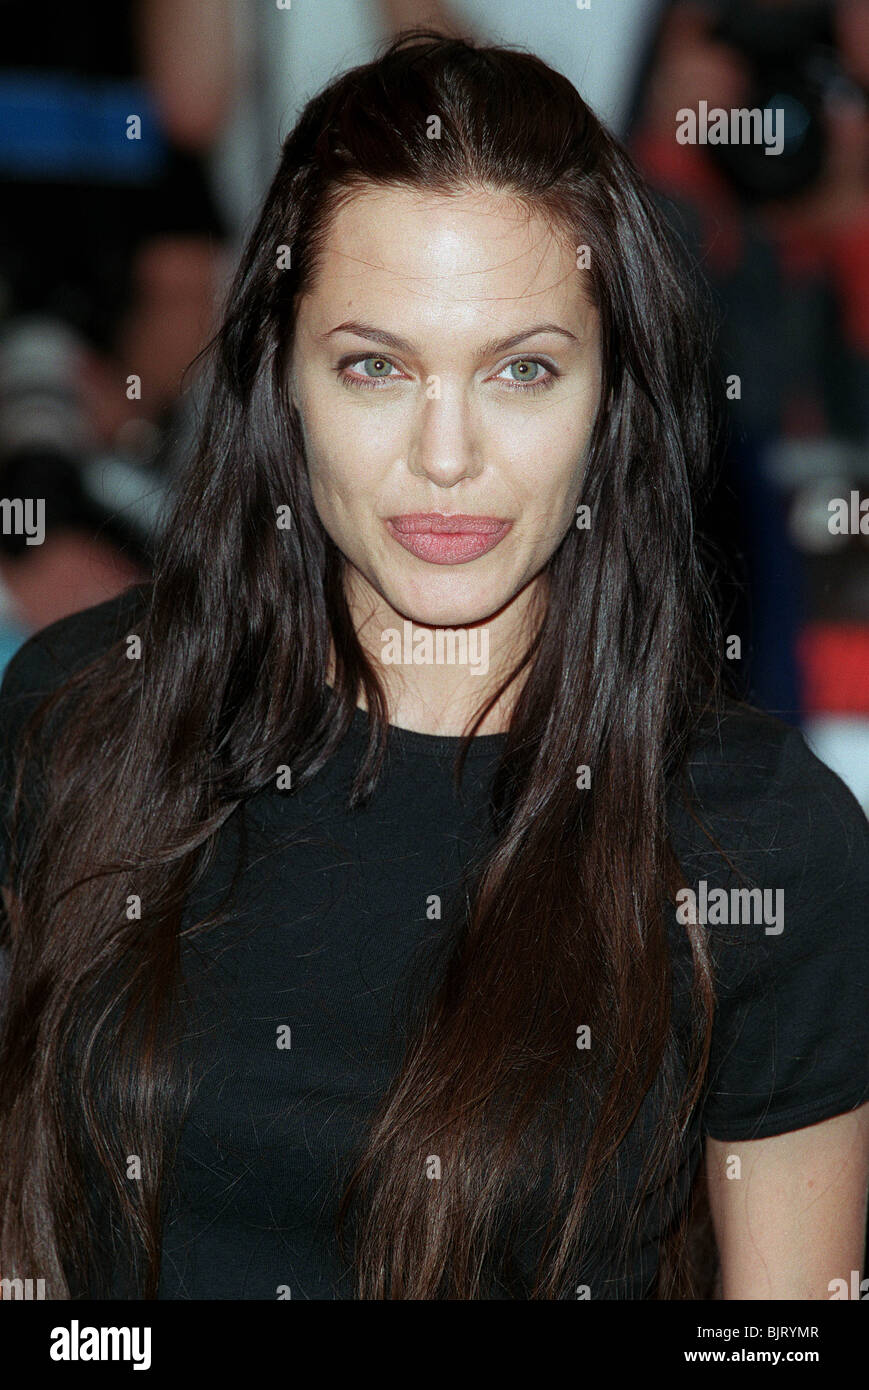 Angelina jolie gone in 60 seconds film prem london england 26 july 2000 stock image